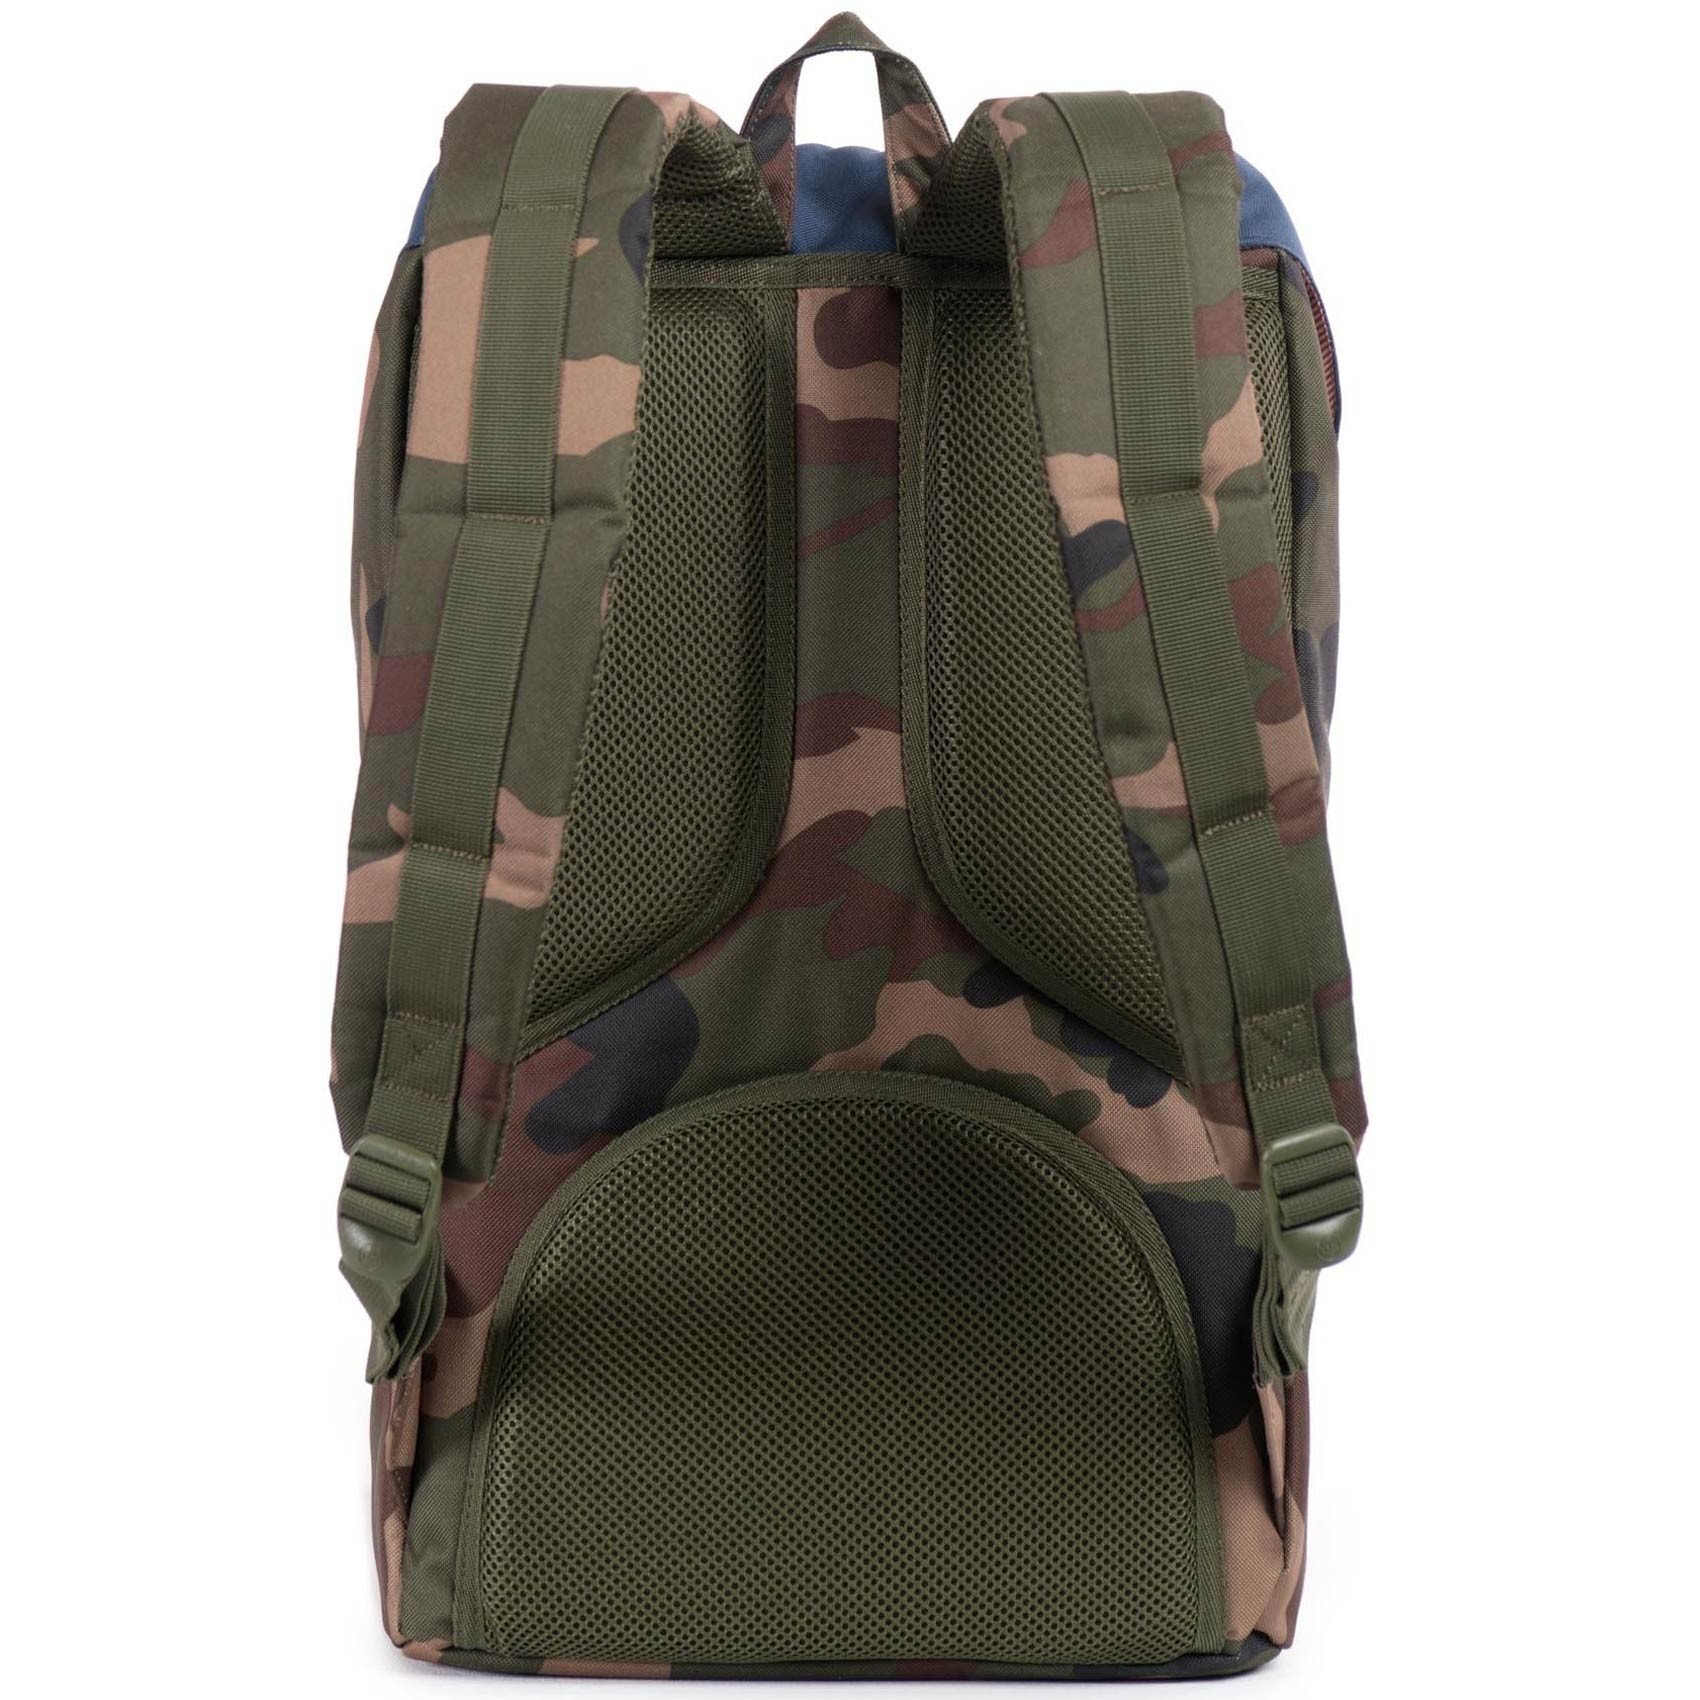 9edc4a422a3 Herschel Little America Backpack - Woodland Camo Navy Red